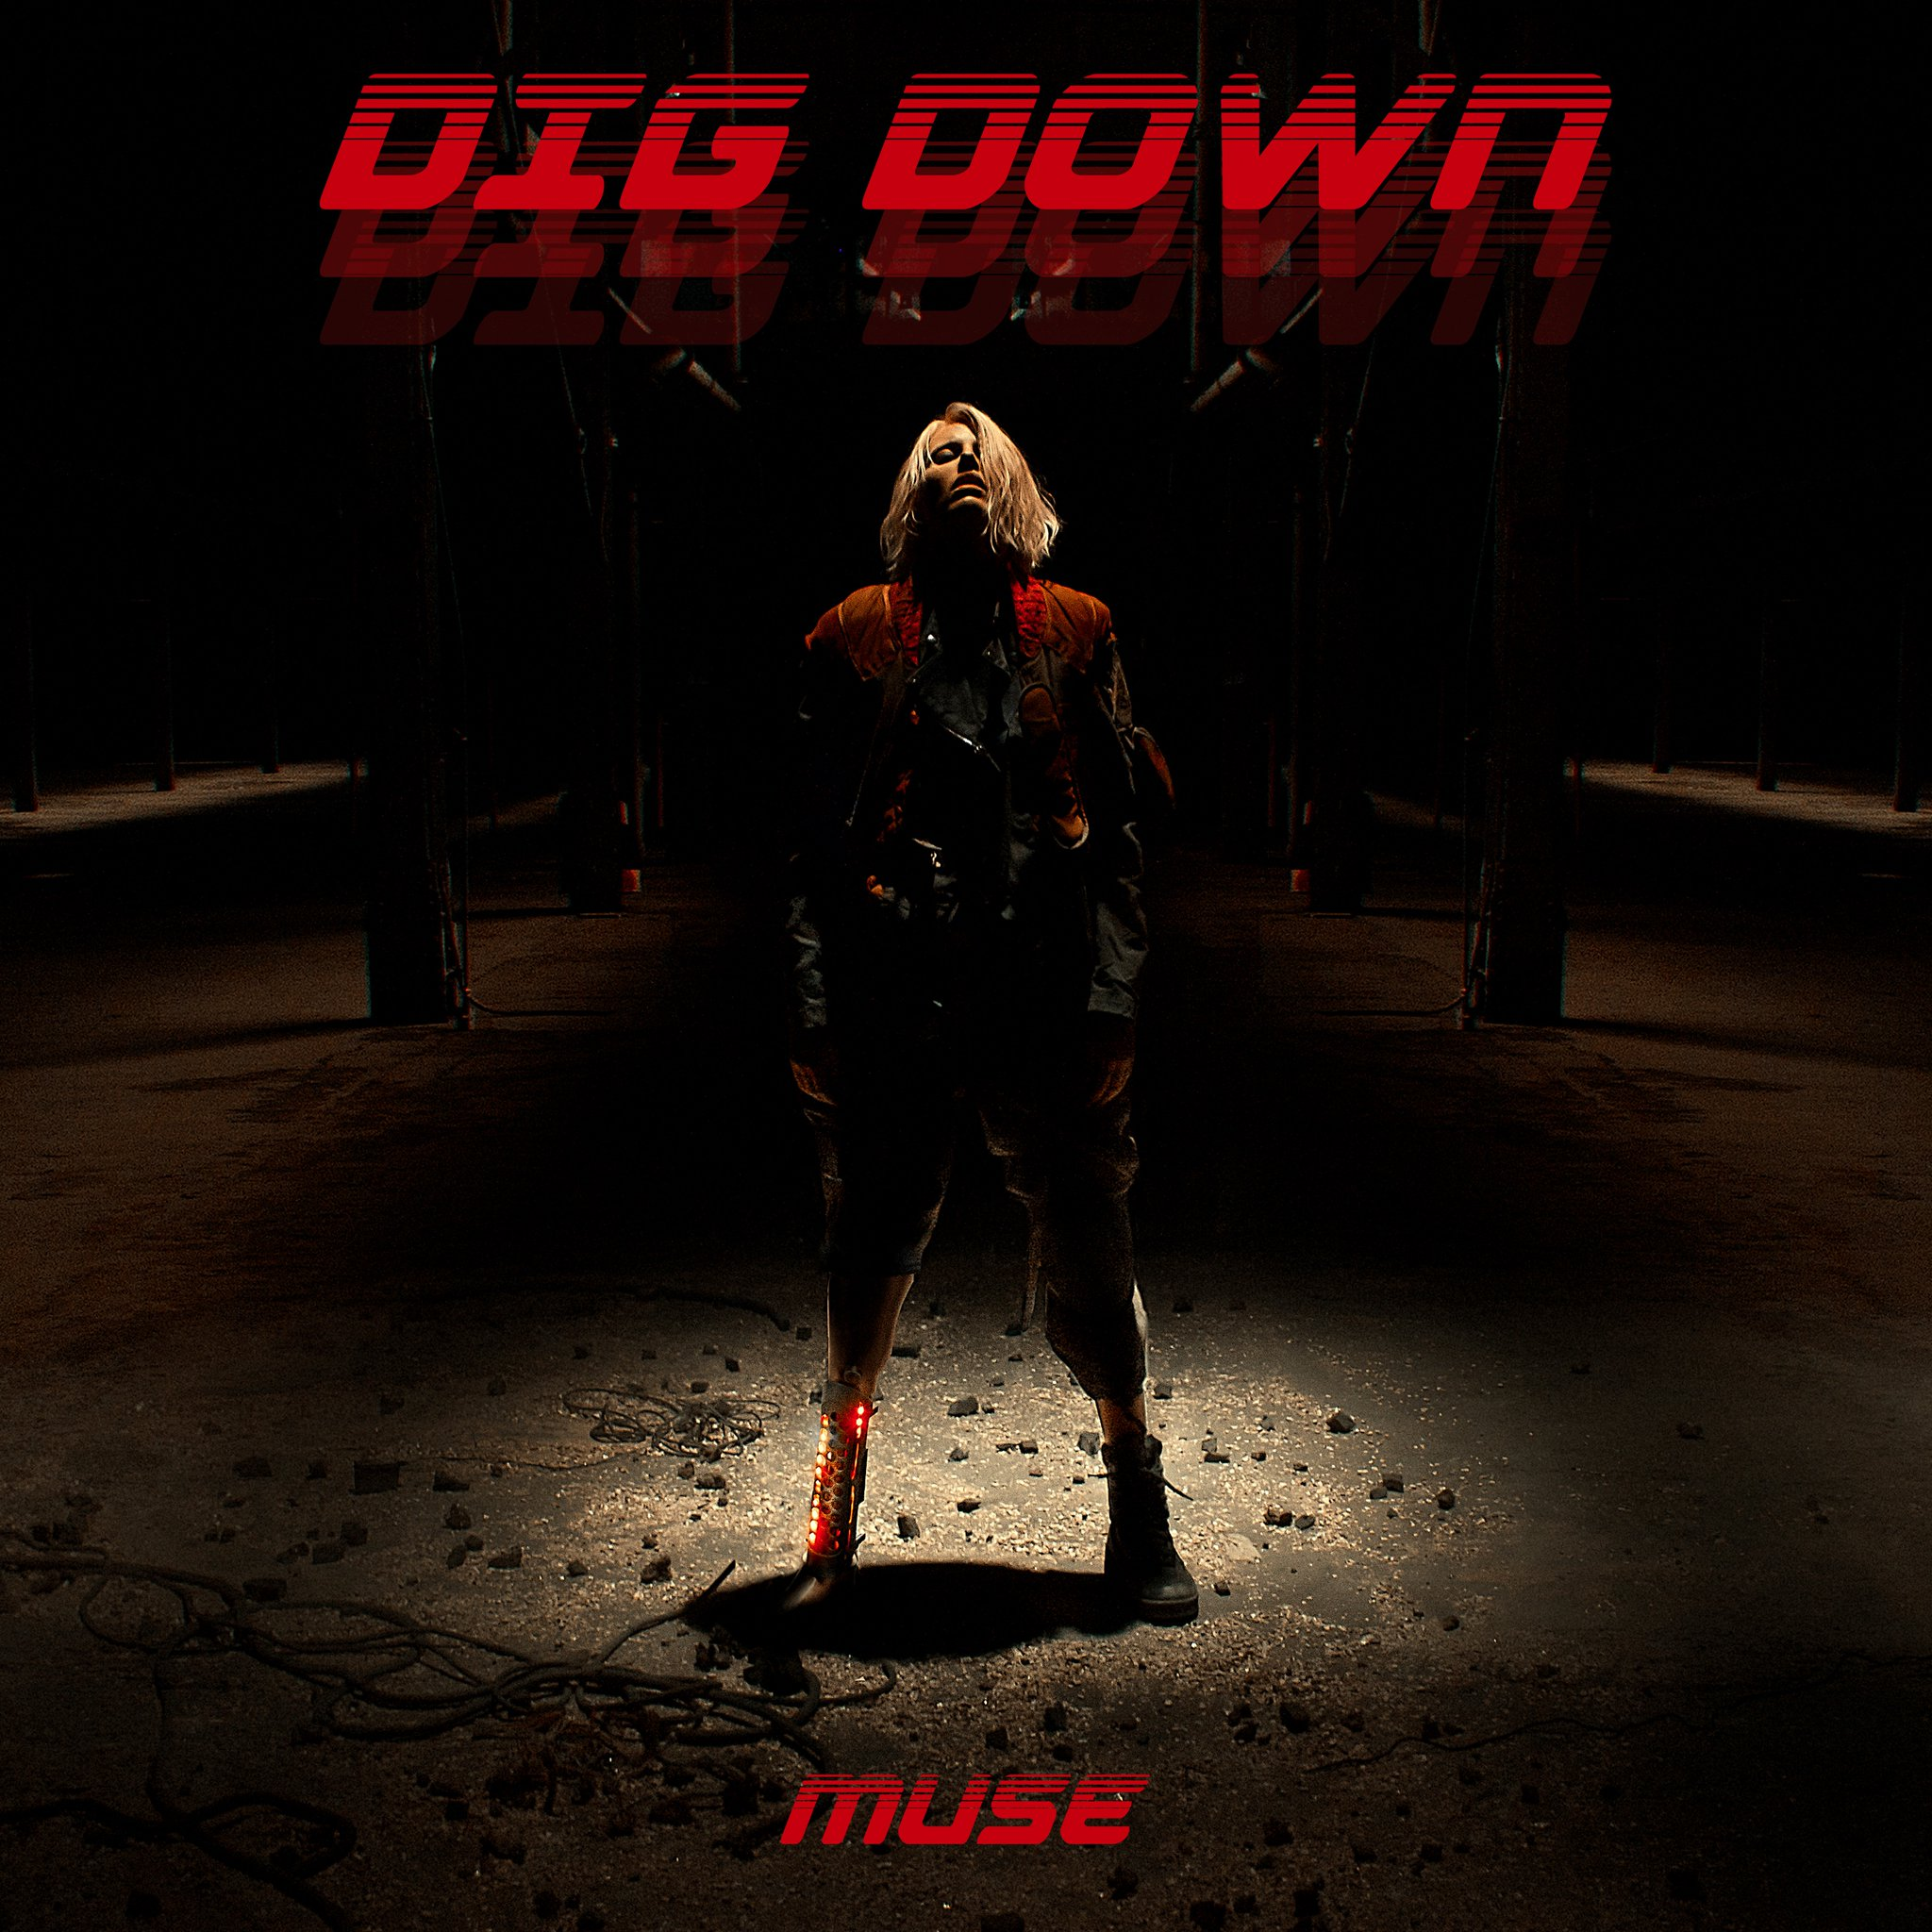 MUSE – Dig Down